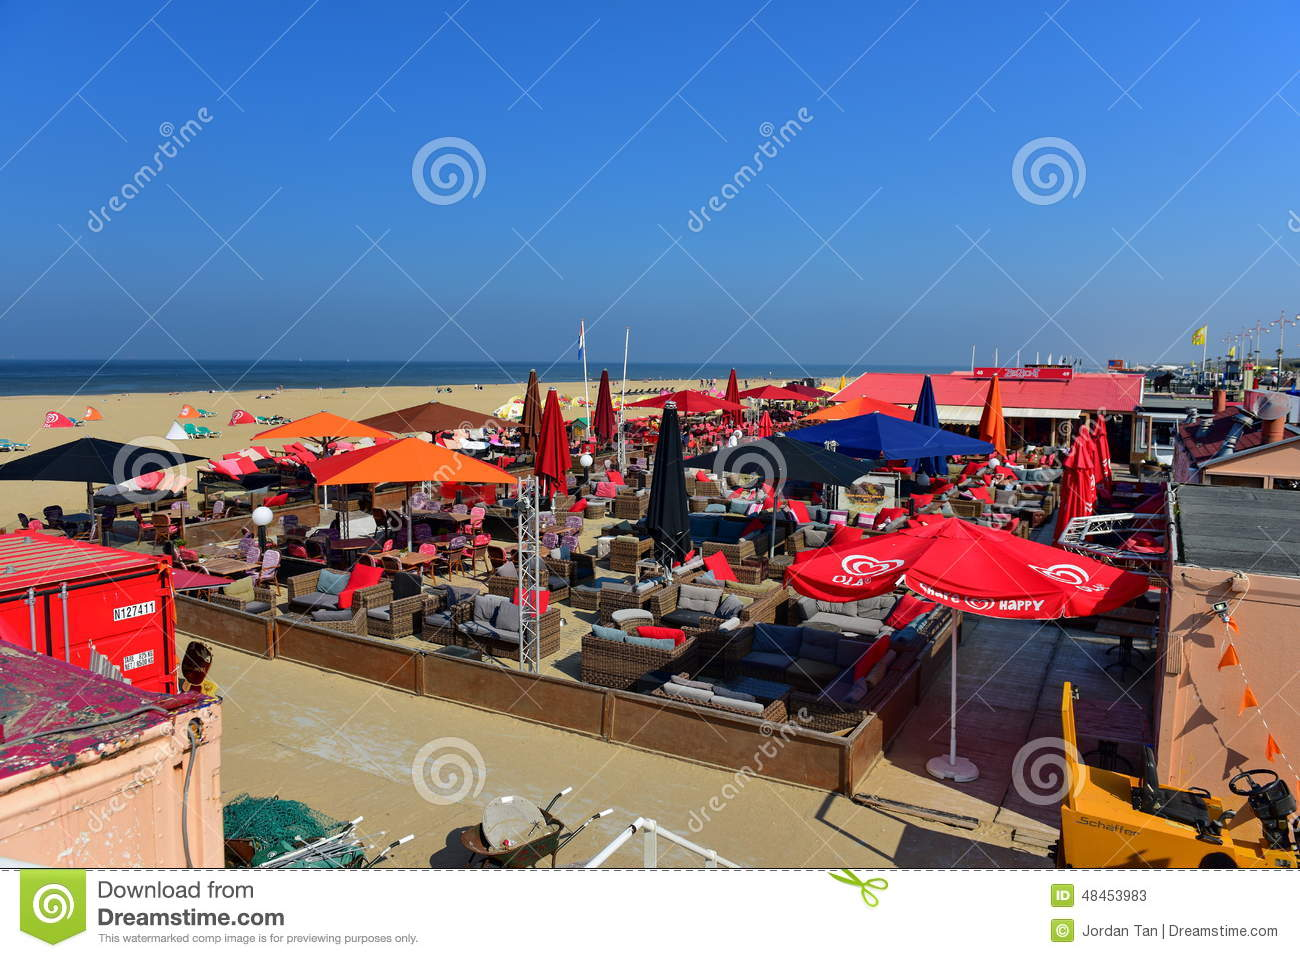 Scheveningen Beach Restaurants Bars And Restaurants Along The Sandy Beach Of Scheveningen